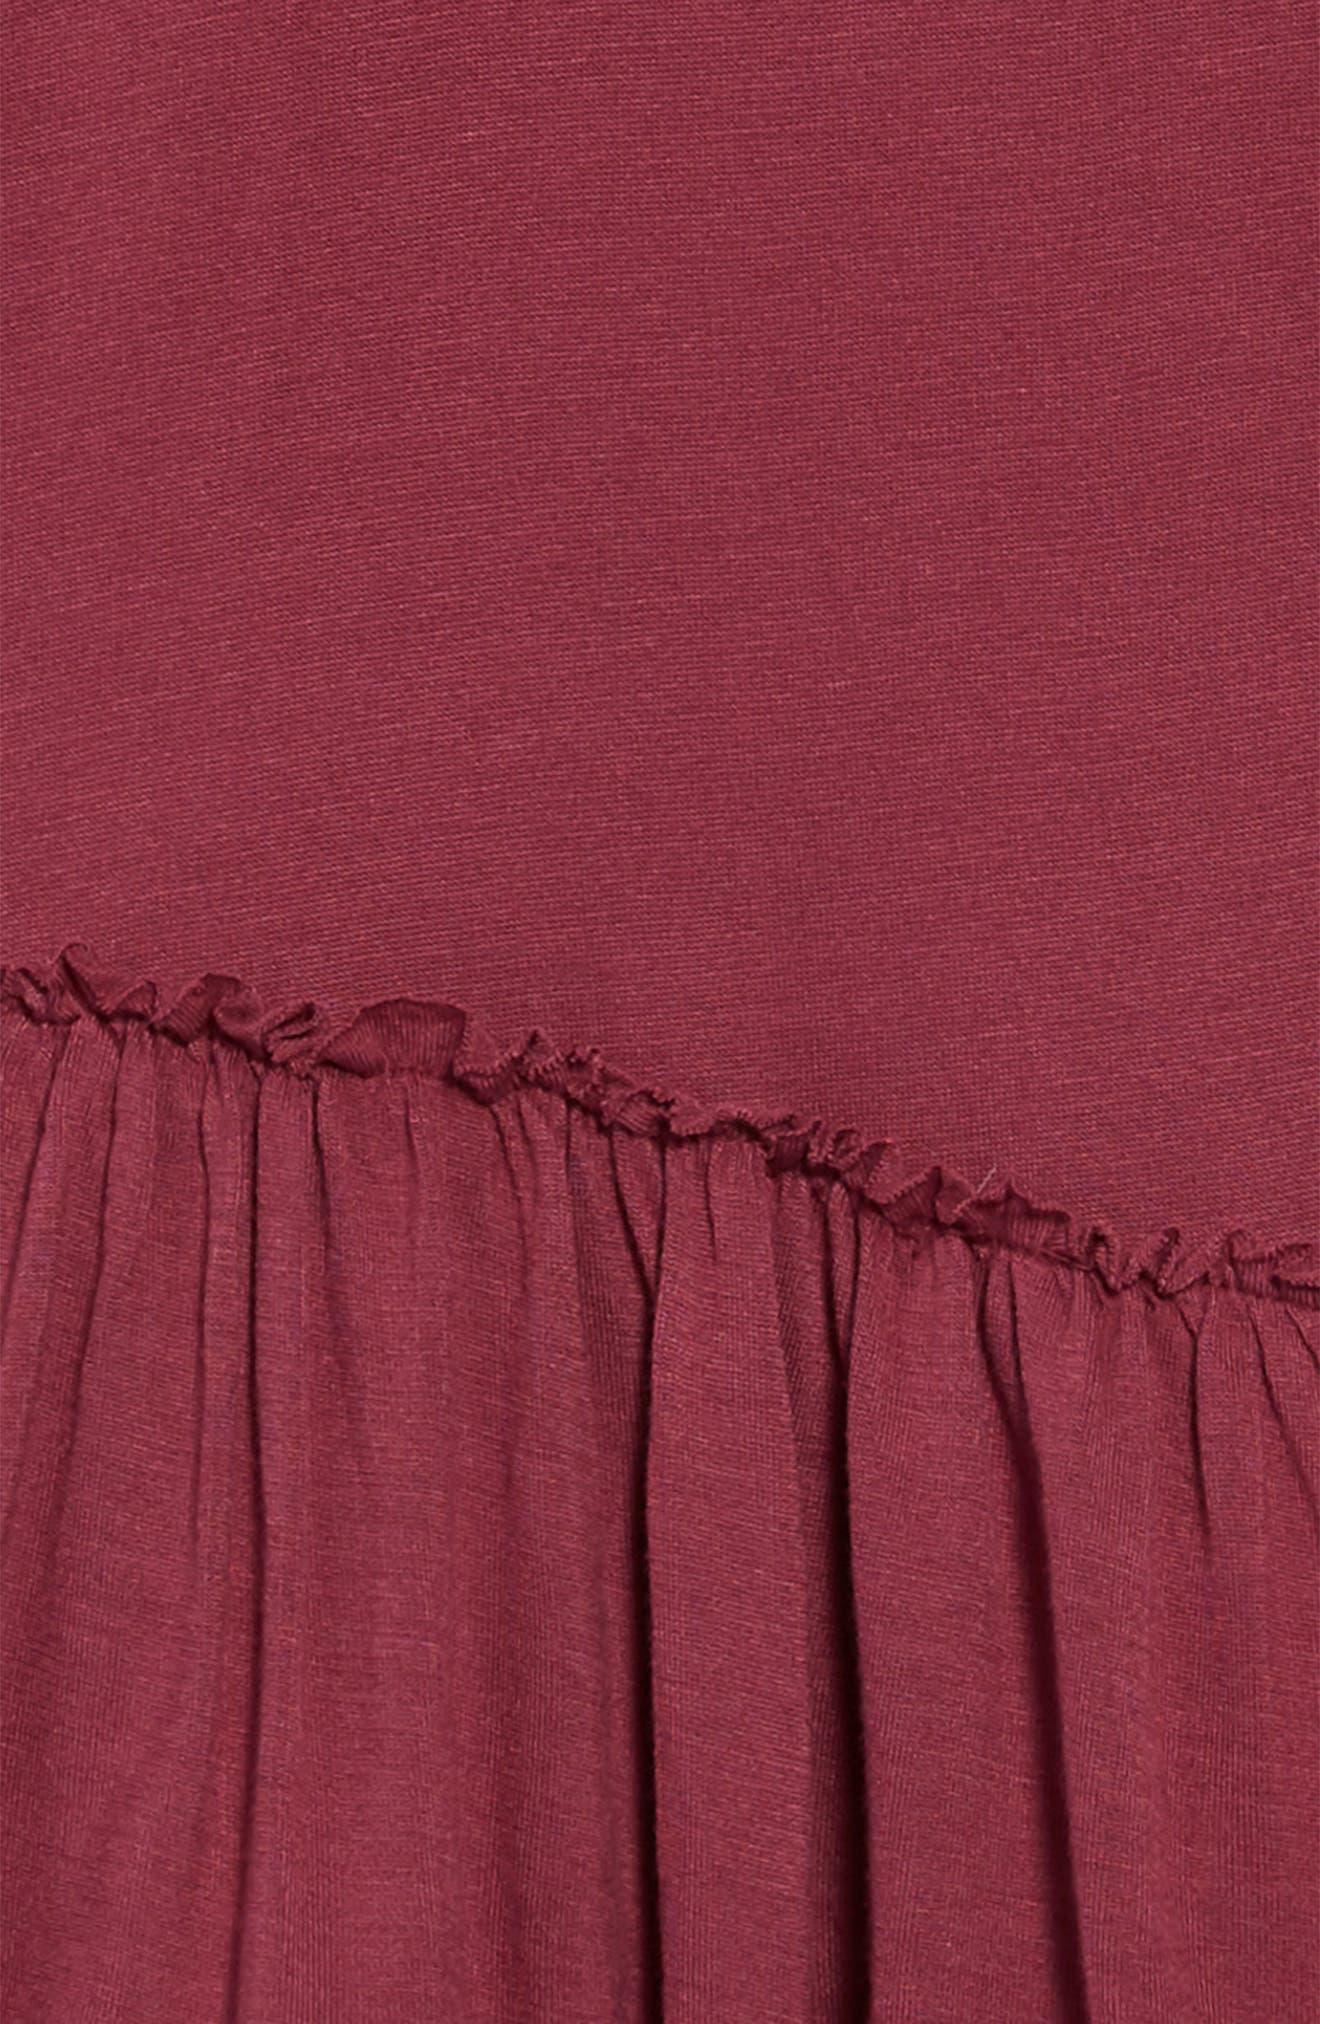 Tiered Tank Dress,                             Alternate thumbnail 3, color,                             Maroon